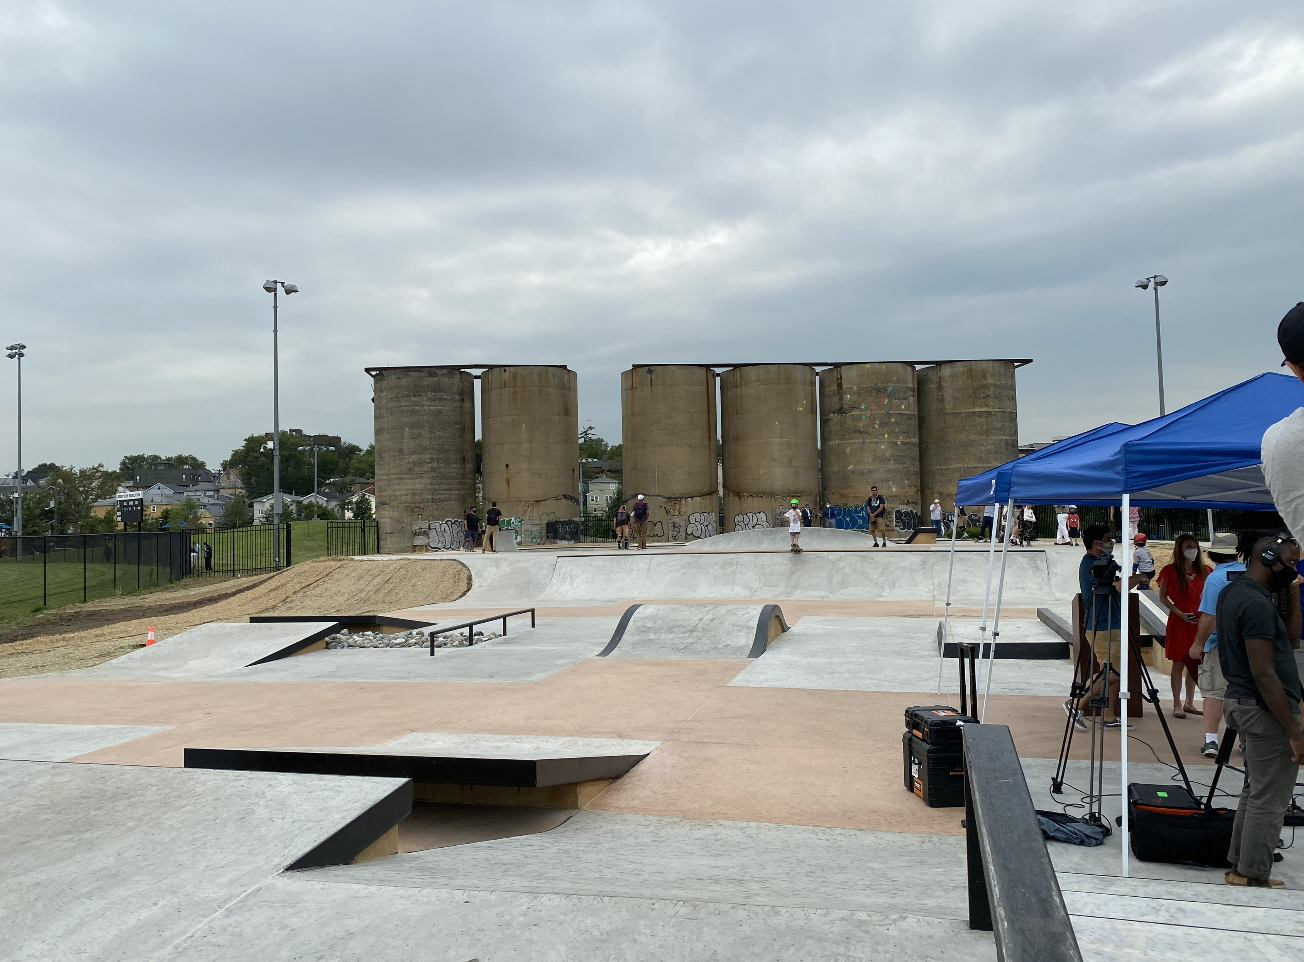 Jersey City Opens New Skate Park with Tony Hawk Foundation Grant